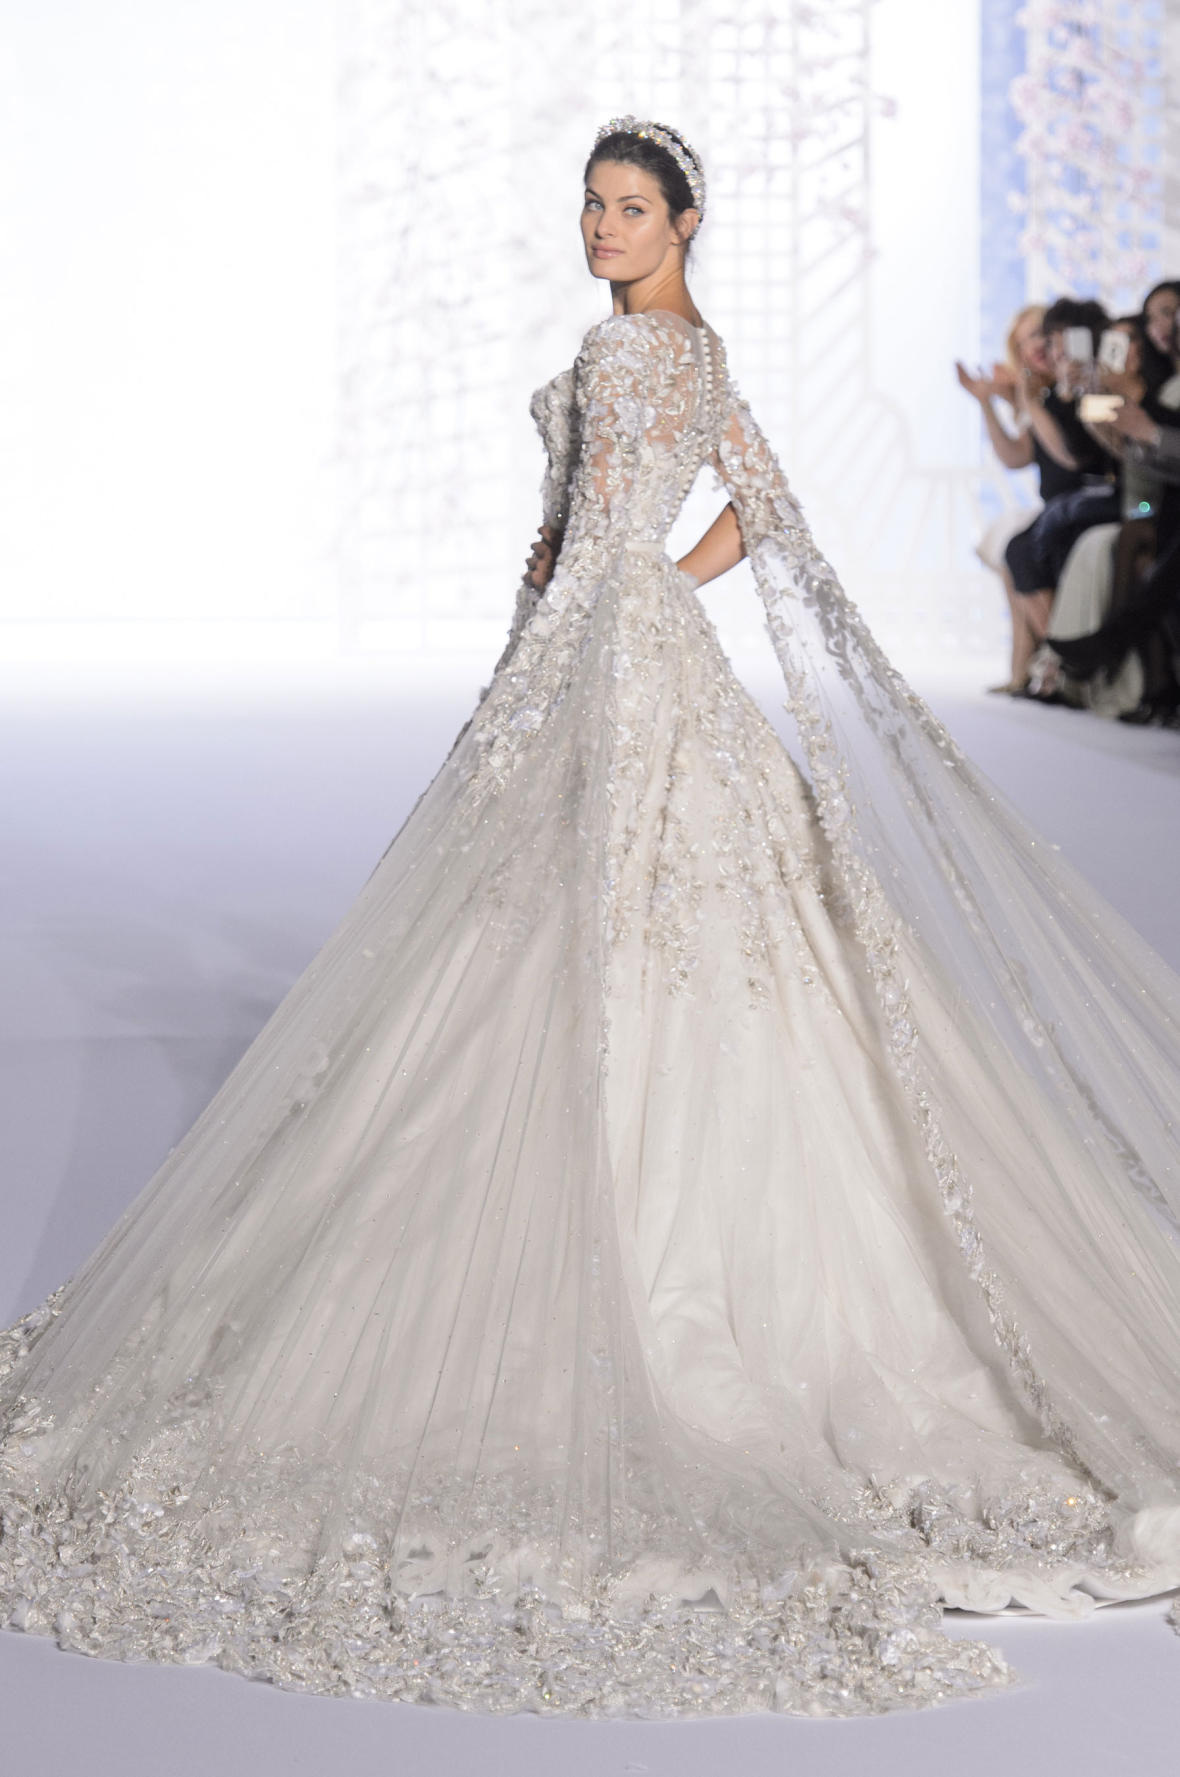 Haute Couture Wedding Dresses Fashion Dress Image Collection